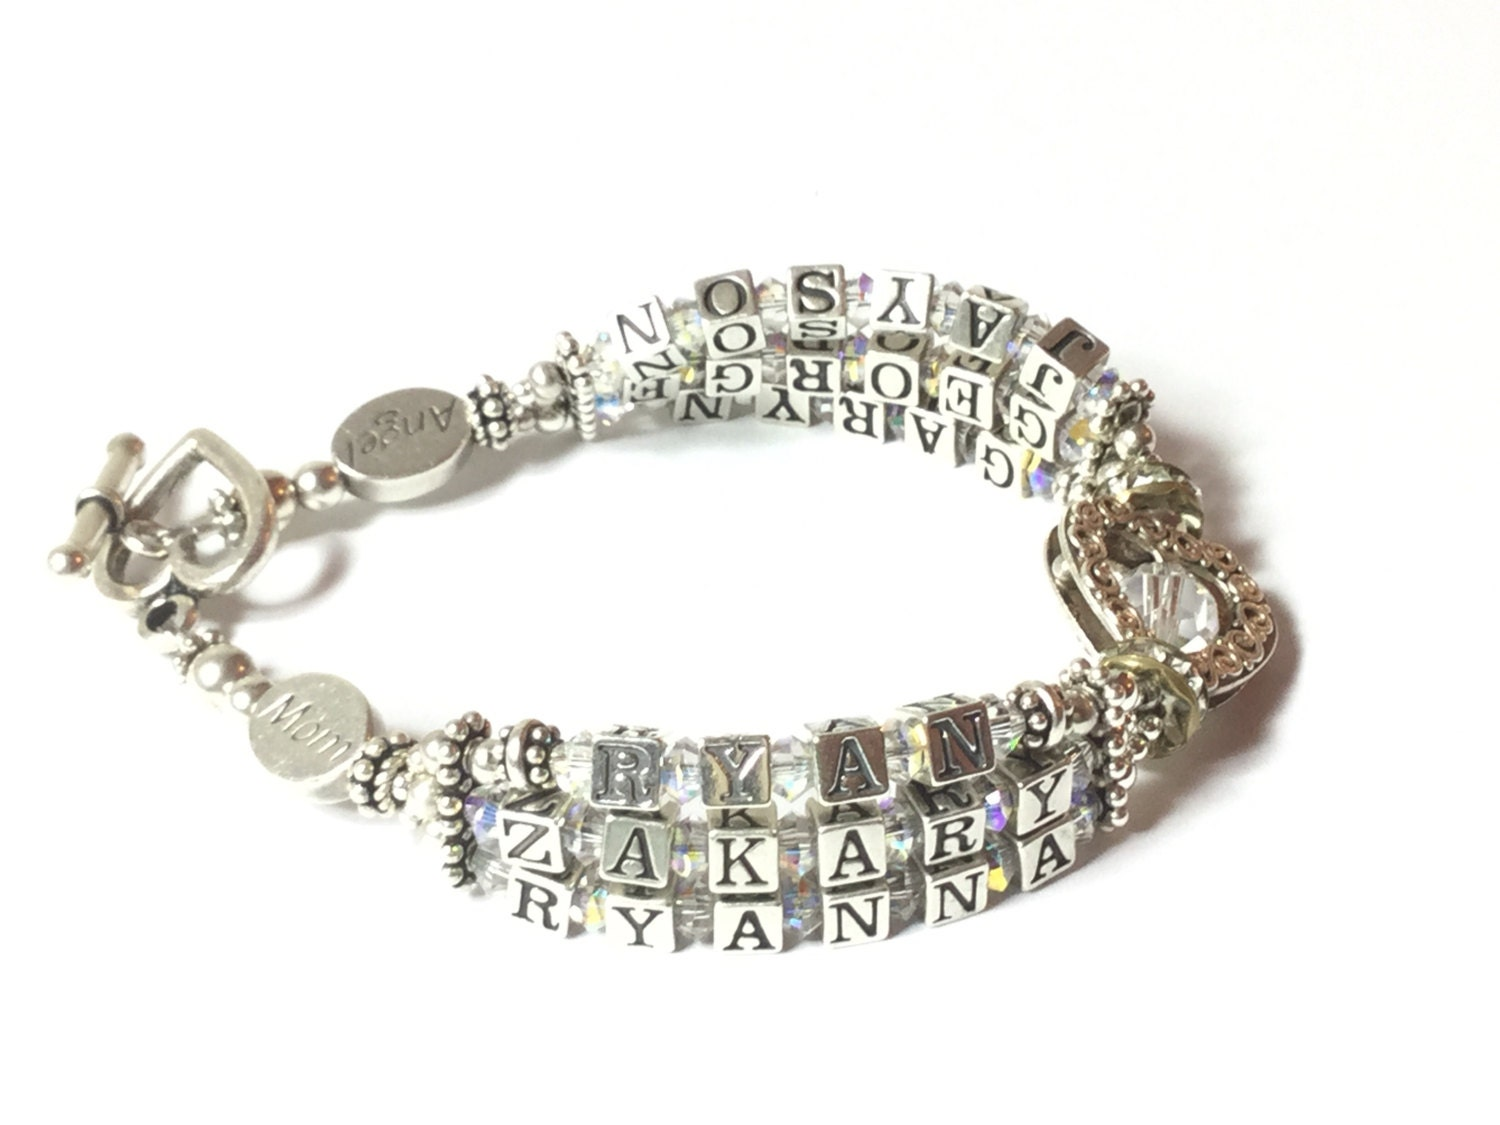 Mommy Bracelet, Mother's Bracelet, Grandmother Bracelet, Grandmother Jewelry, Family Name Bracelet, Children Name Bracelet, 6 name bracelet